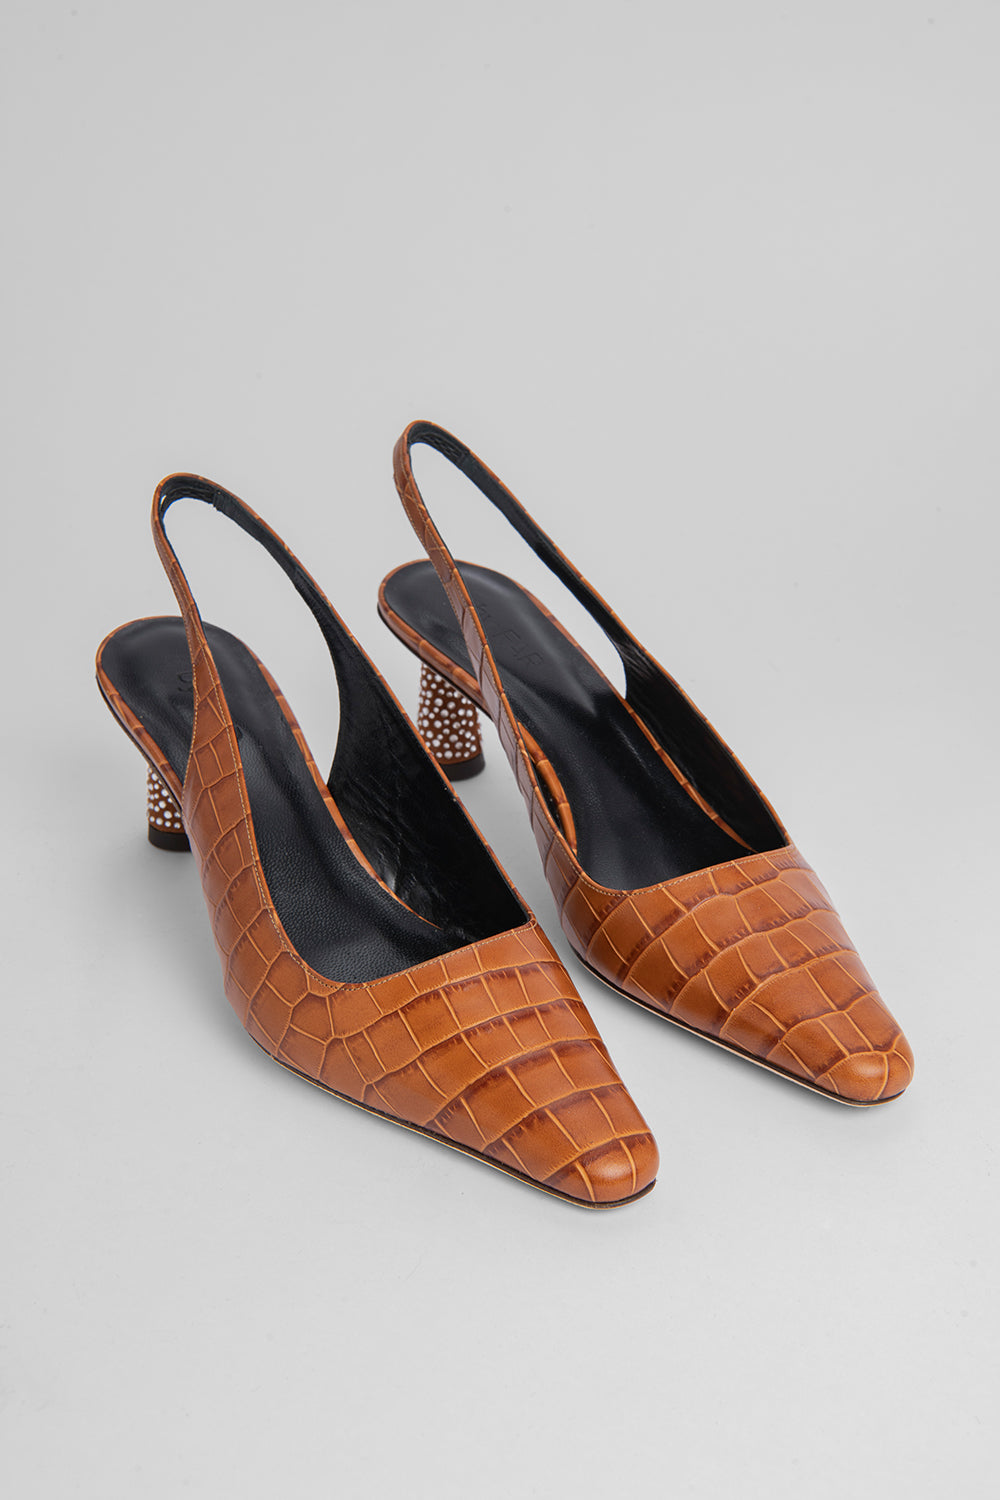 Diana Tan Croco Embossed Leather